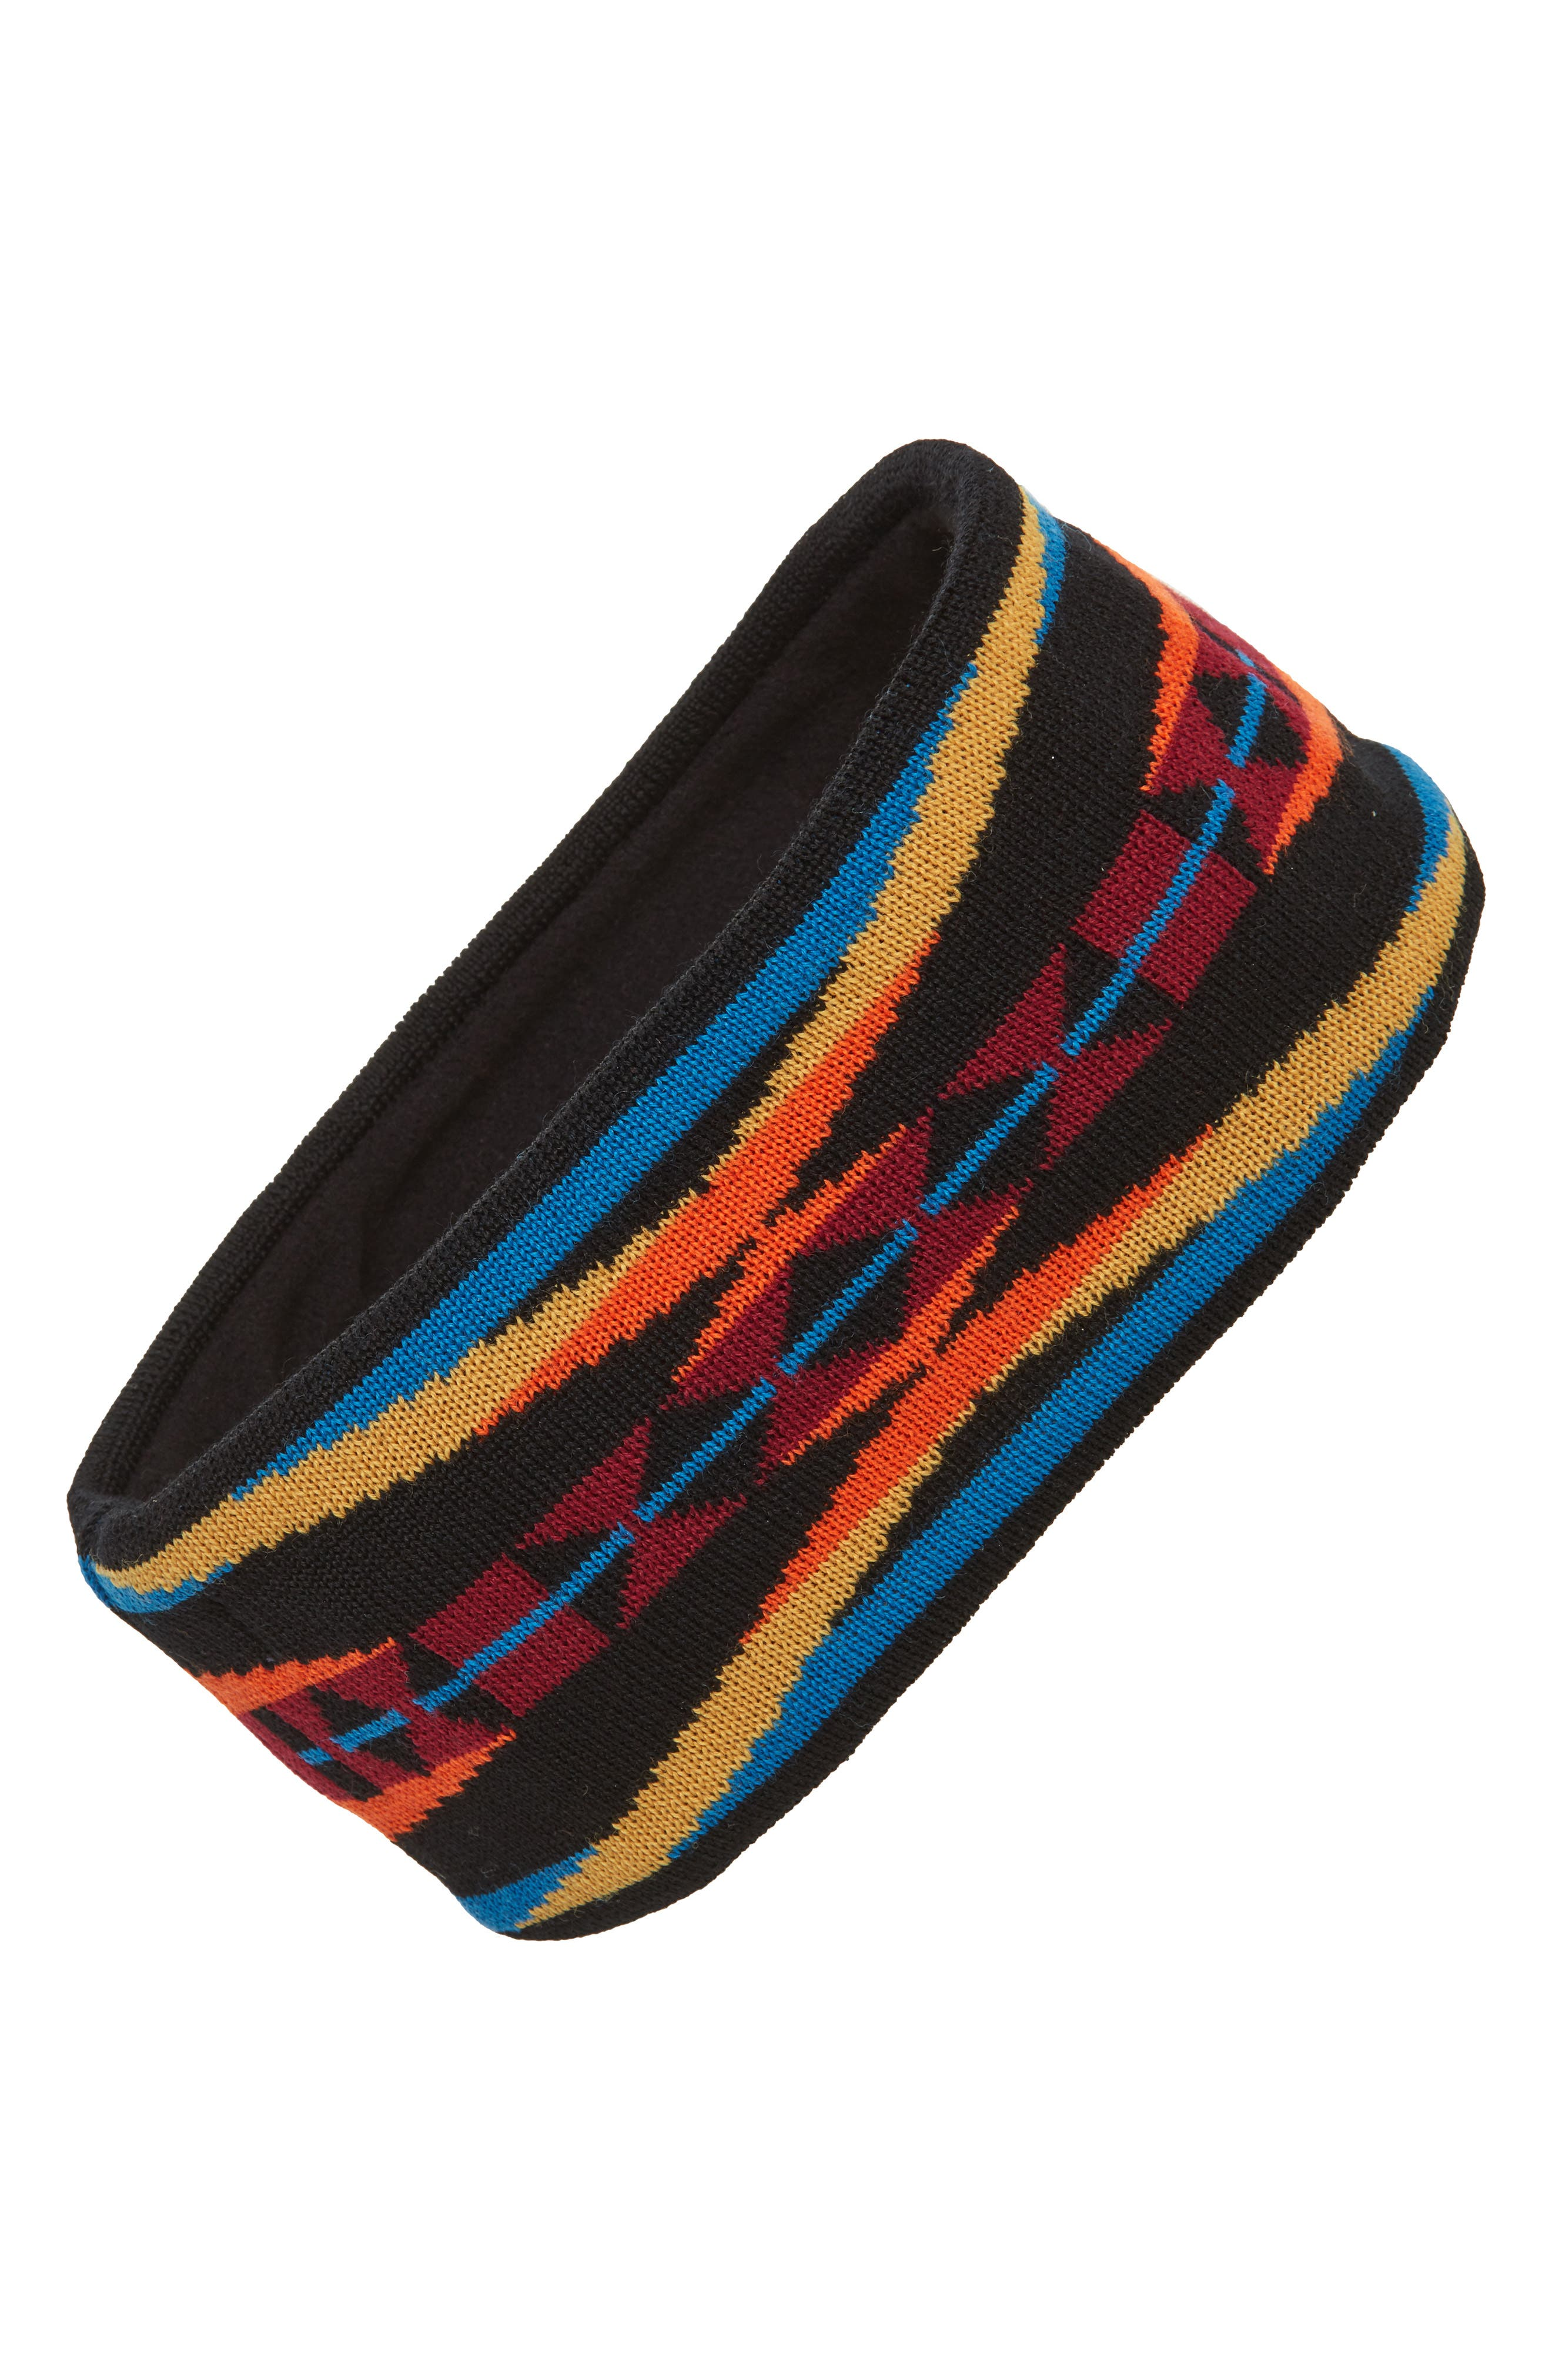 Main Image - Pendleton Fleece Lined Headband